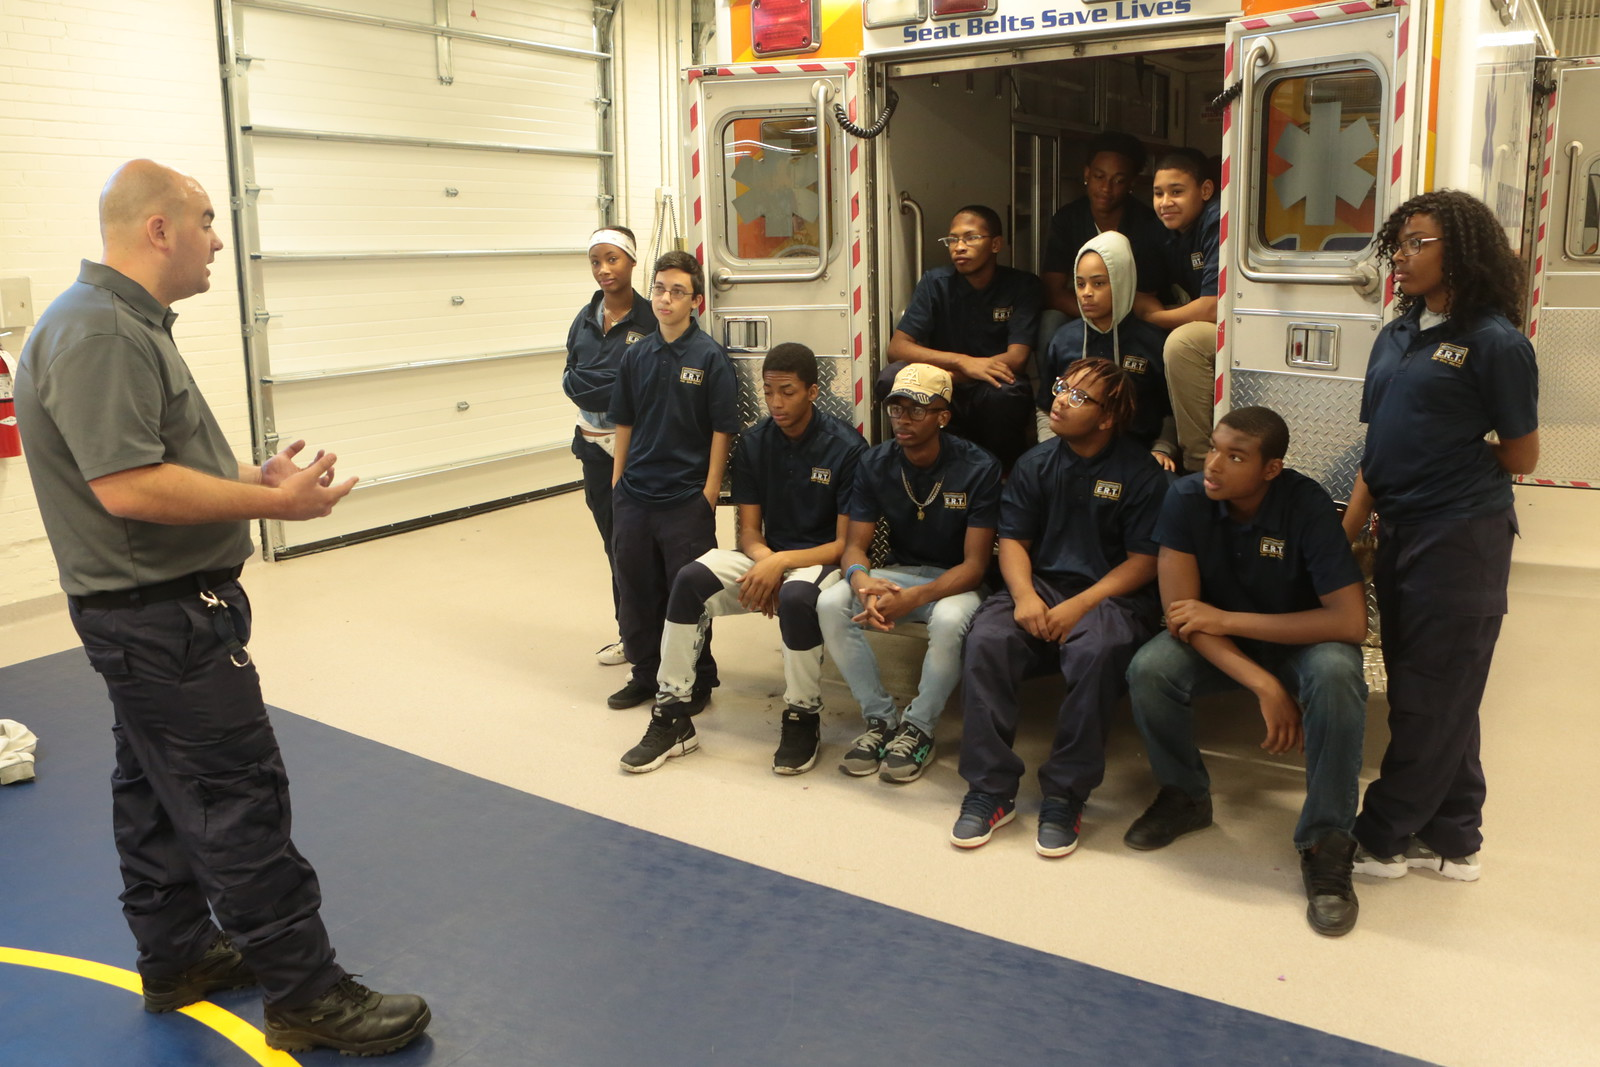 Students in the Emergency Response Technology program listen to the instructor at Pittsburgh's Westinghouse Academy. (Photo by Brian Cook/PublicSource)